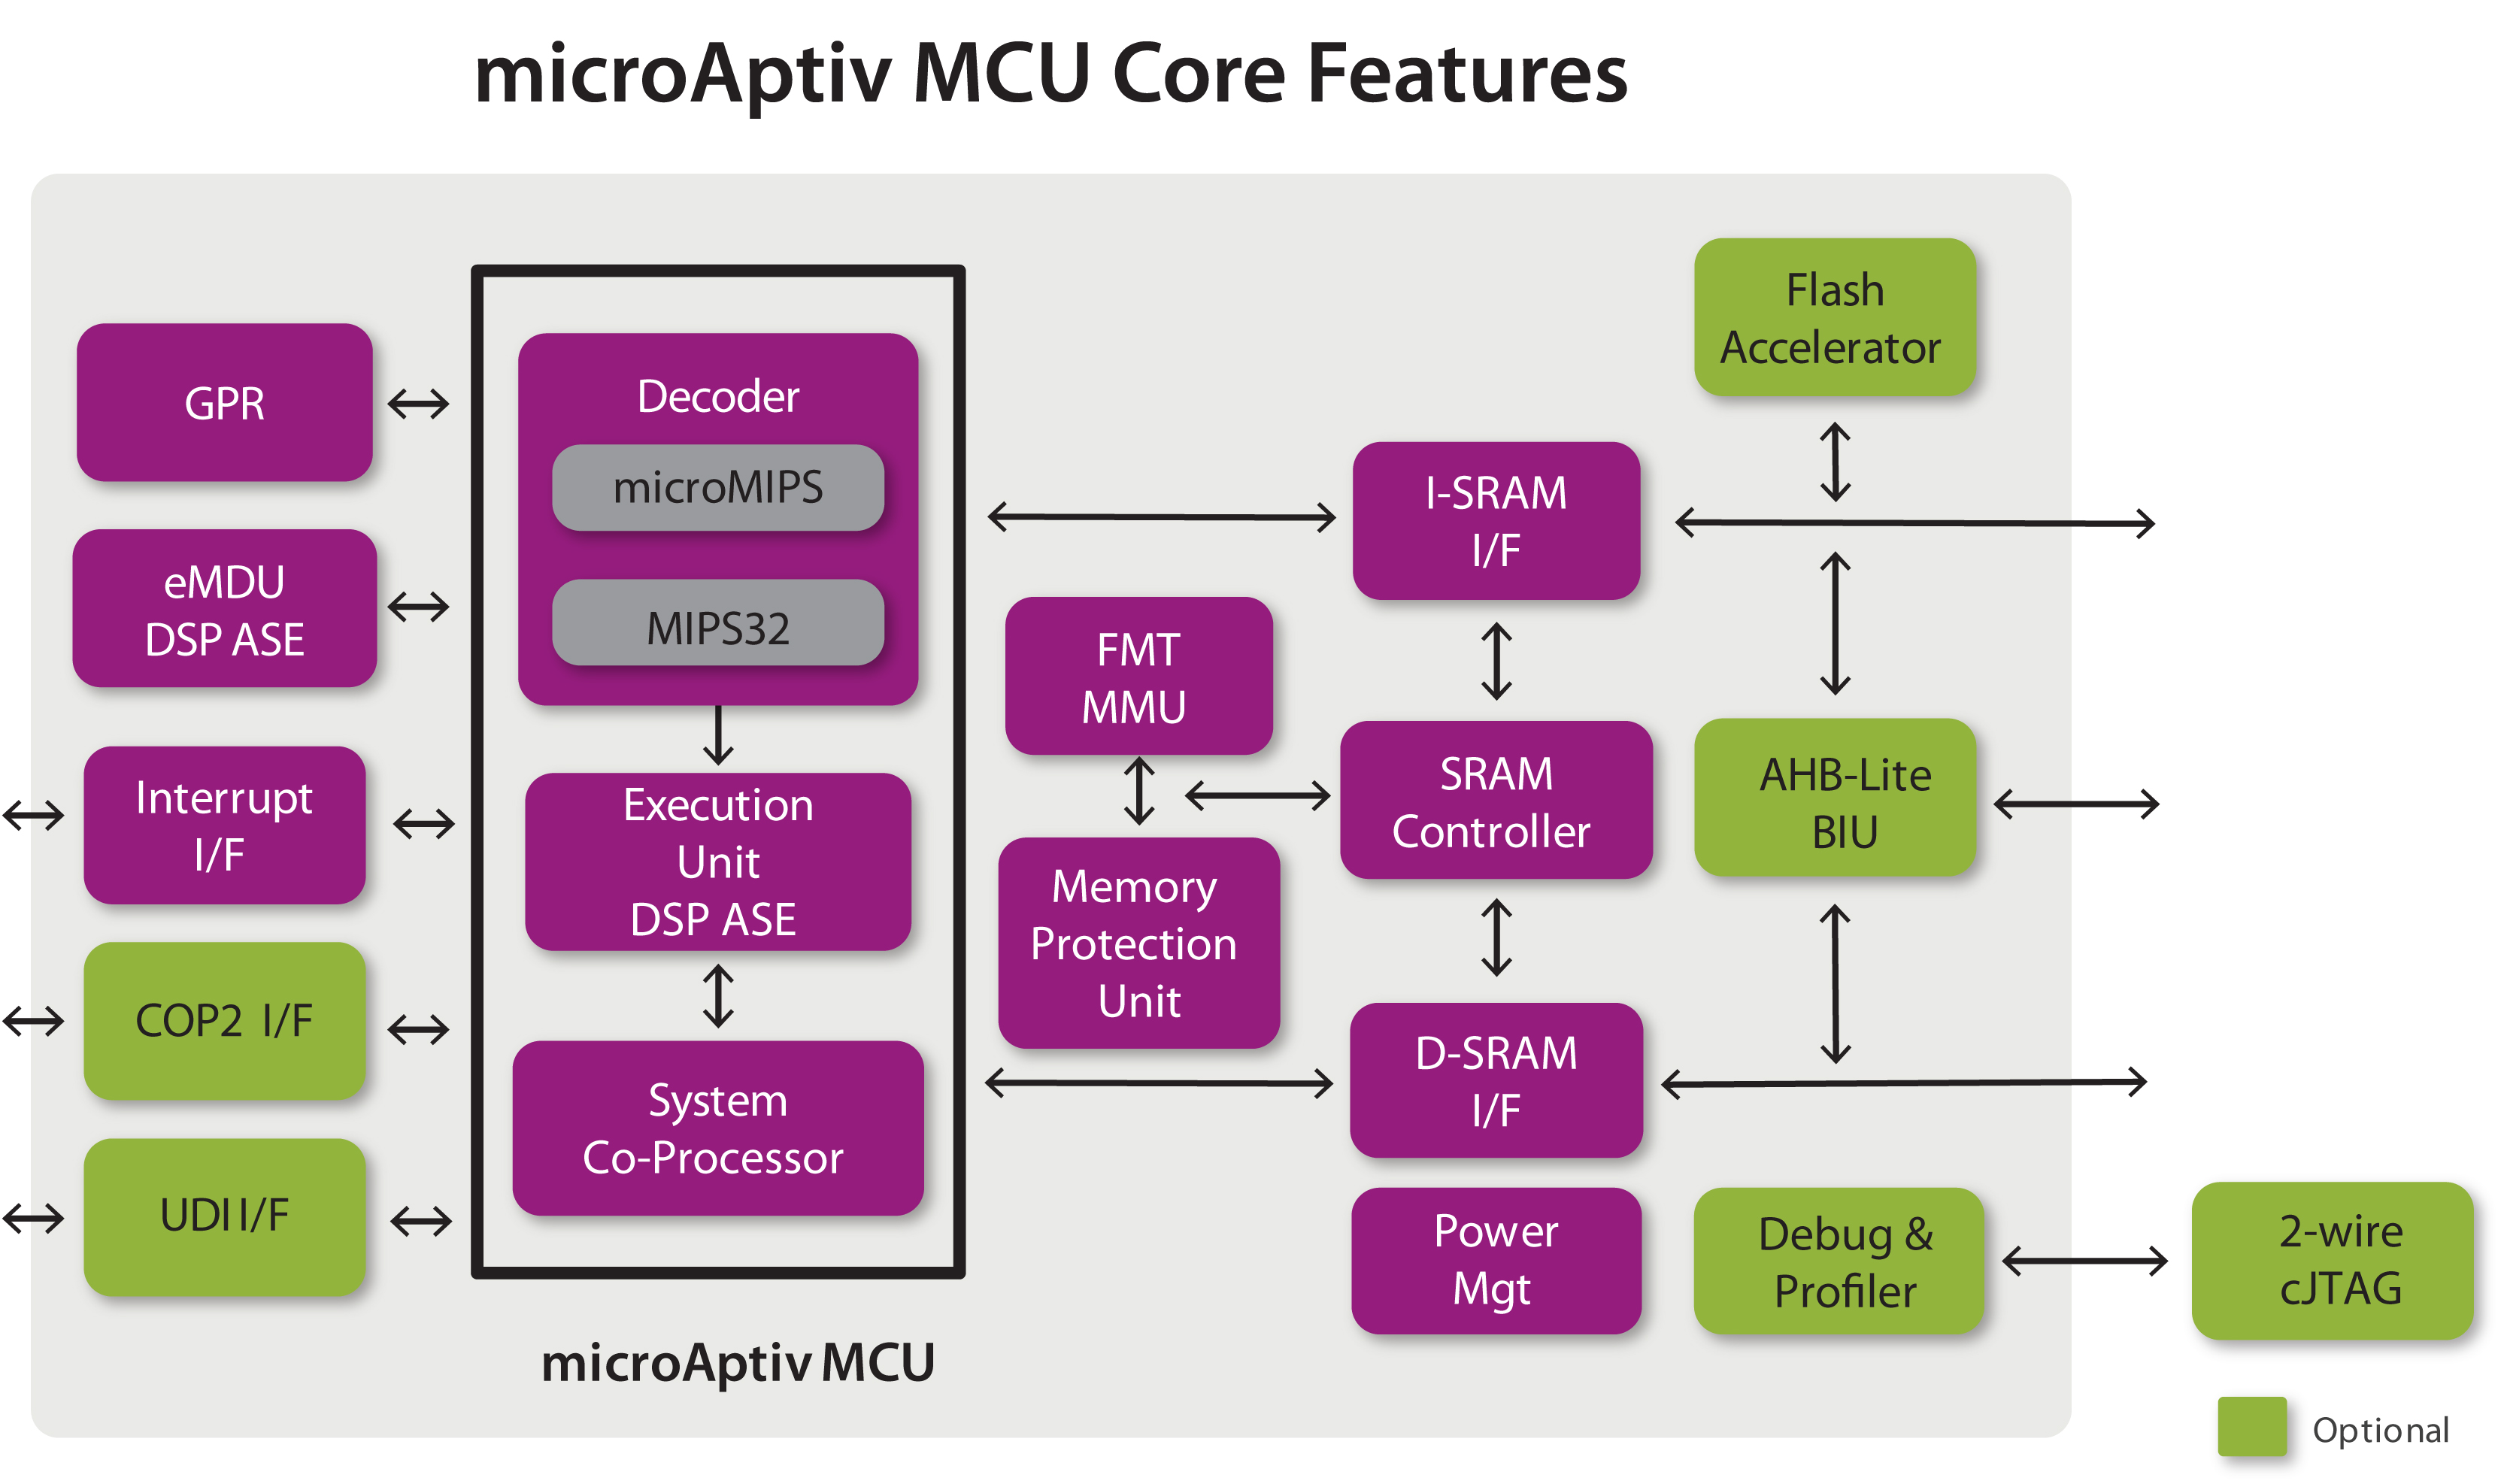 Interaptiv And Microaptiv Architectures Mips Technologies Updates Omap 5 Block Diagram Processor Ip Lineup With Aptiv Series